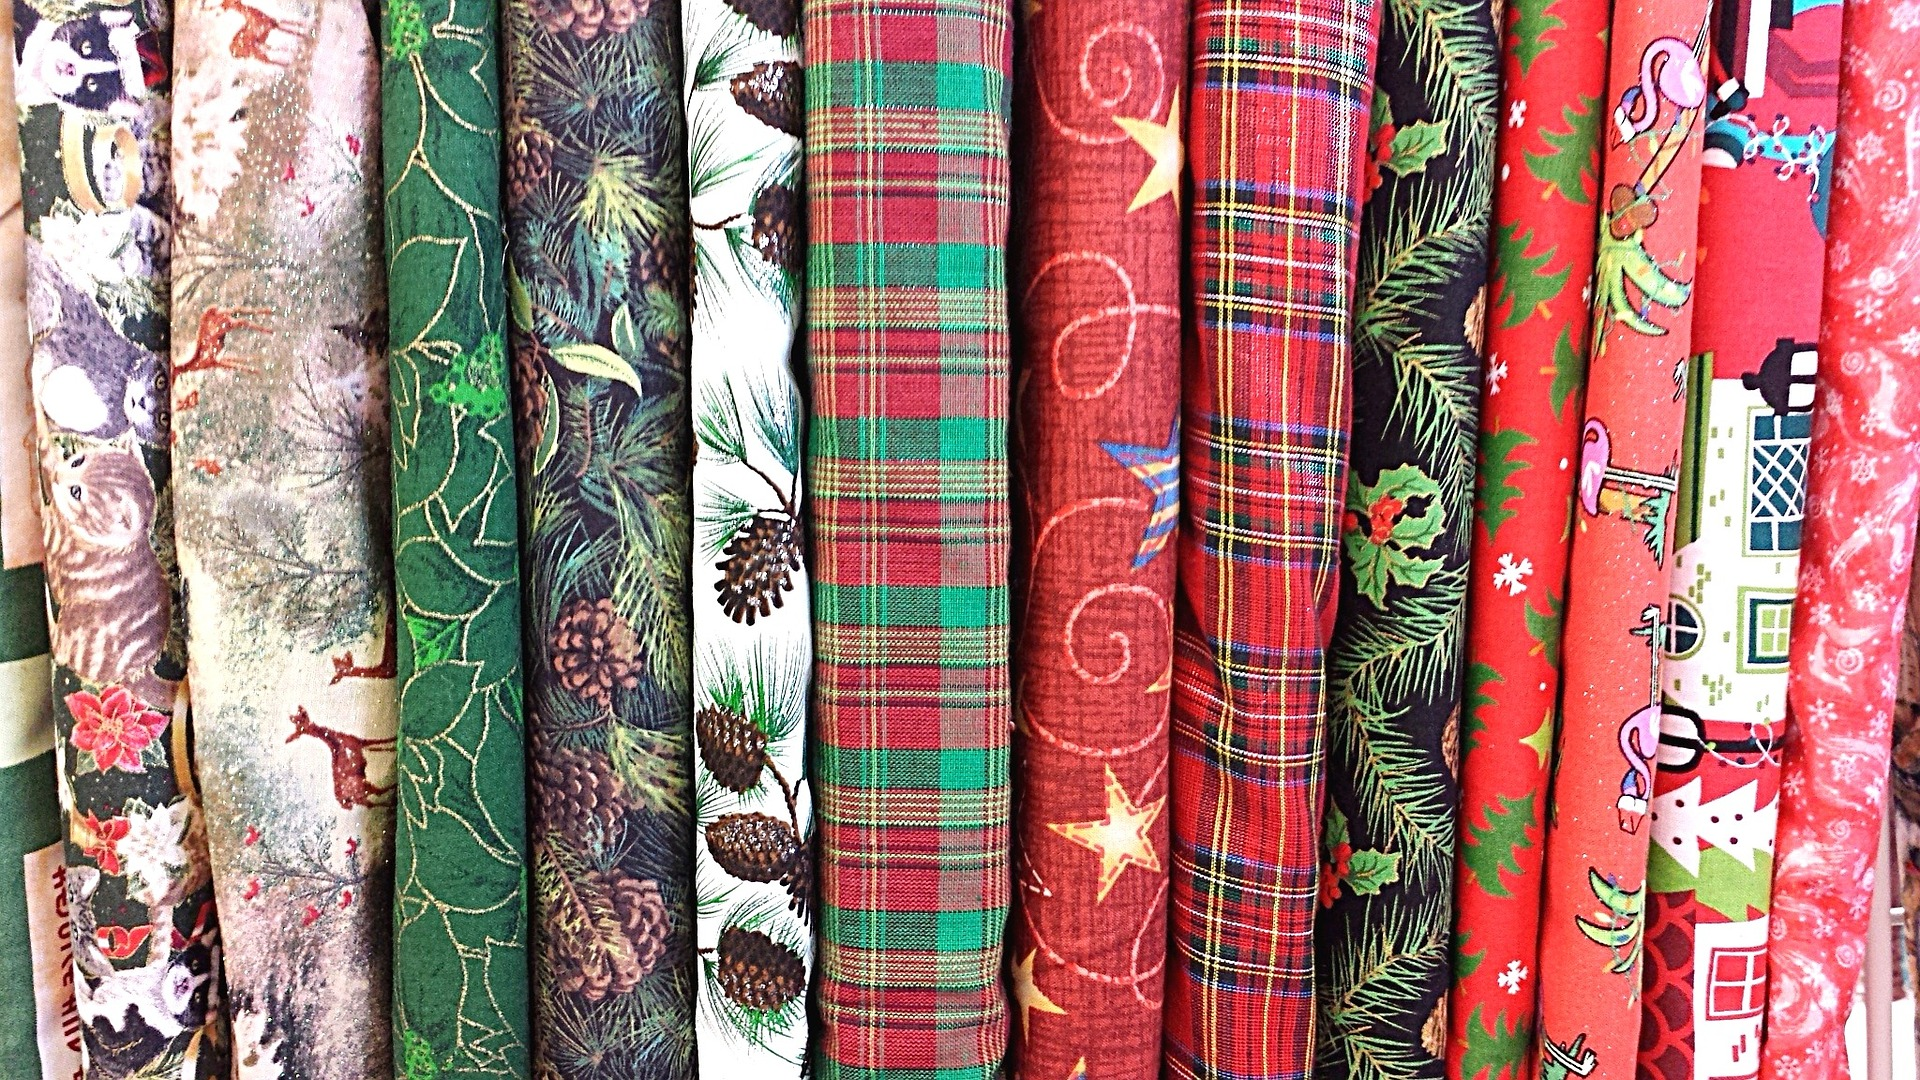 dhalgarwad-shopping dress materials places in ahmedabad